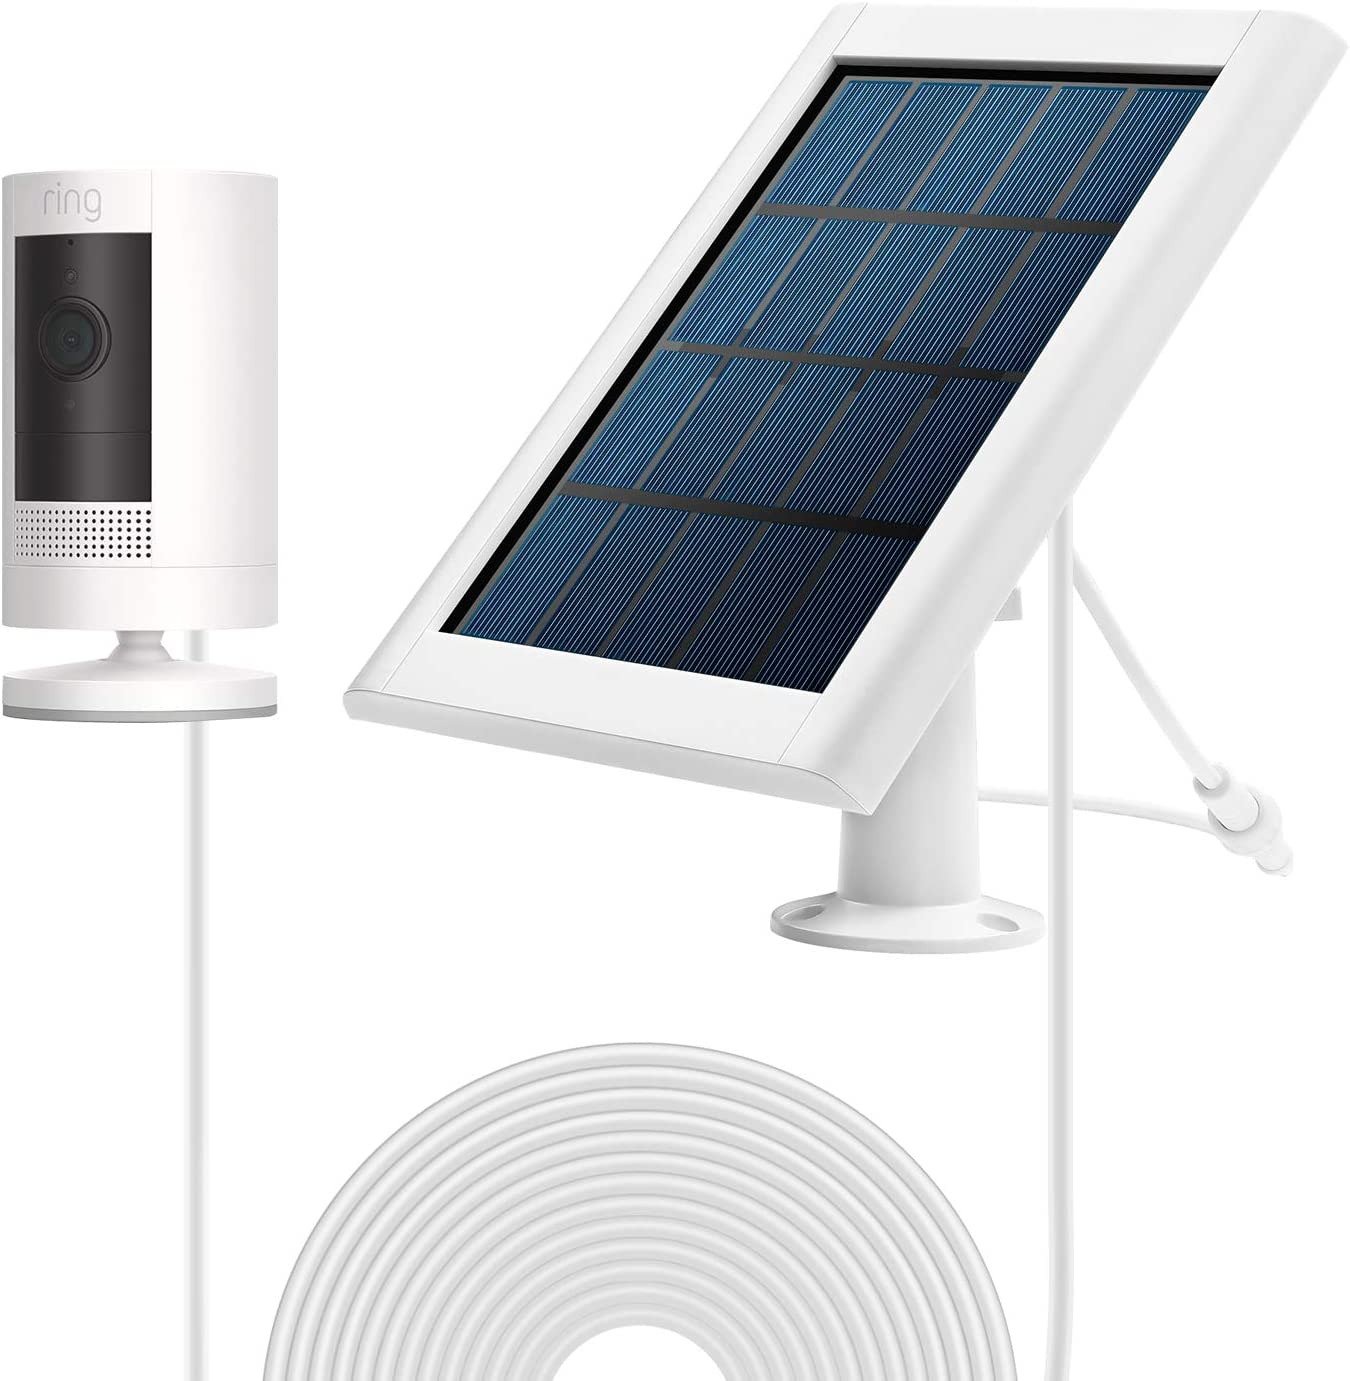 No Include Camera Output,Includes Secure Wall Mount,3.8M//12 ft Power Cable Waterproof Charge Continuously,5 V// 3.5 W ,White Max OLAIKE Solar Panel for Spotlight Cam Battery /& Stick Up Battery Cam